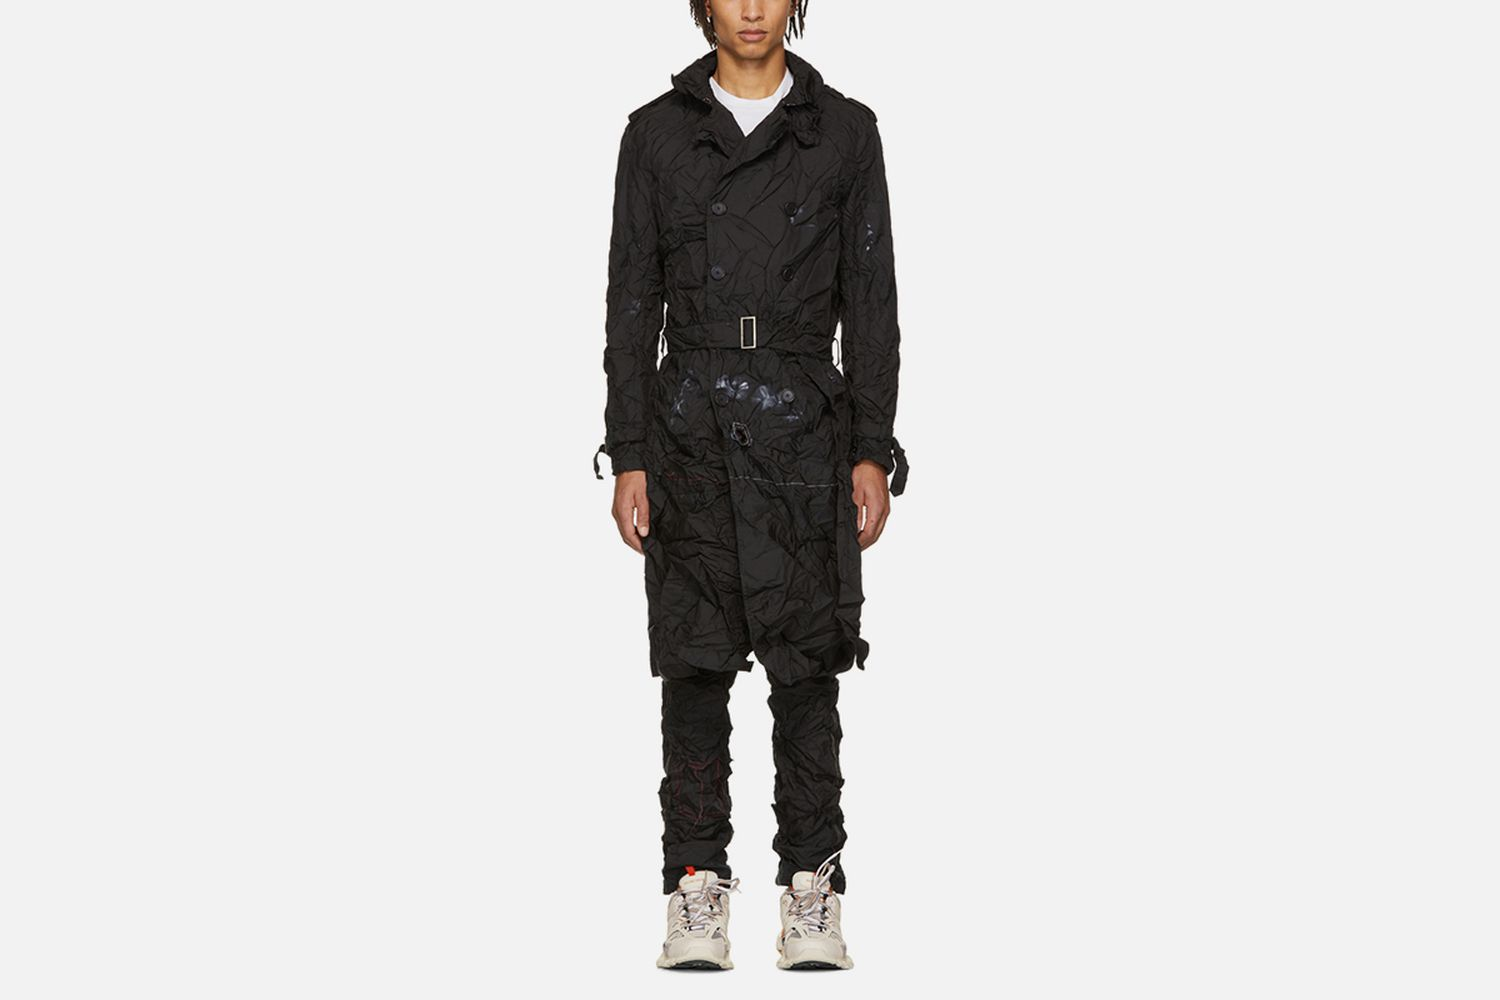 Cropped Readymade Airbag Trench Coat